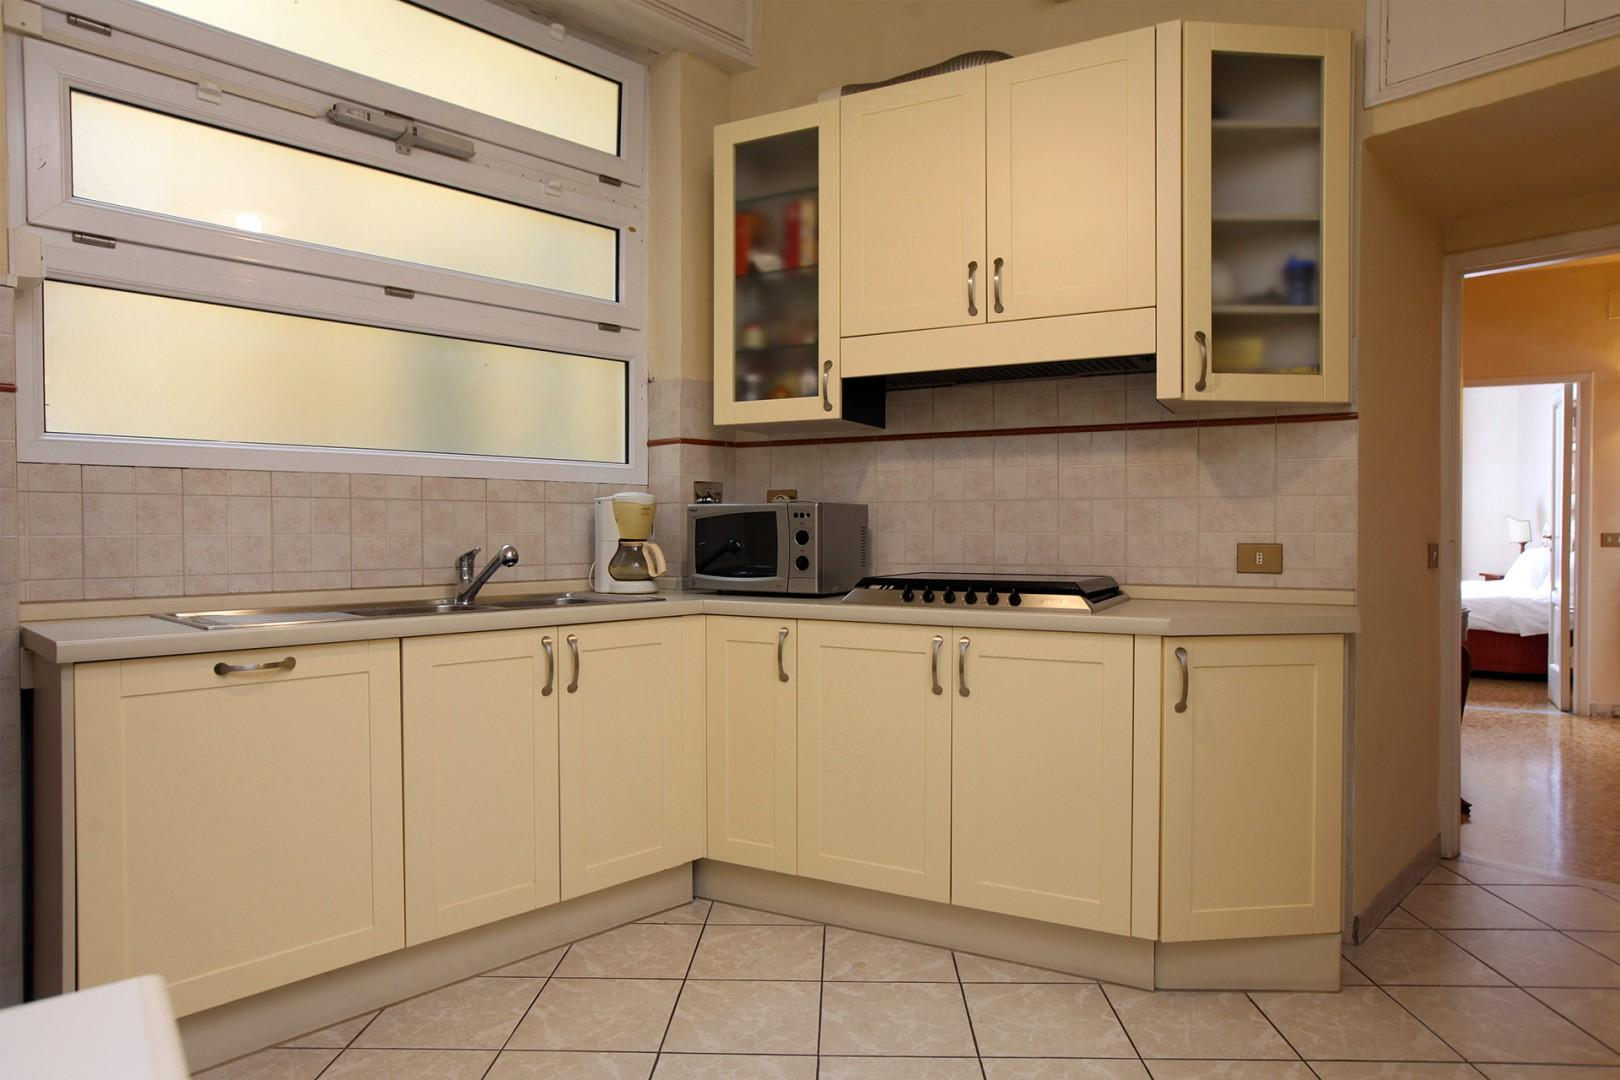 Modern, fully appointed kitchen.